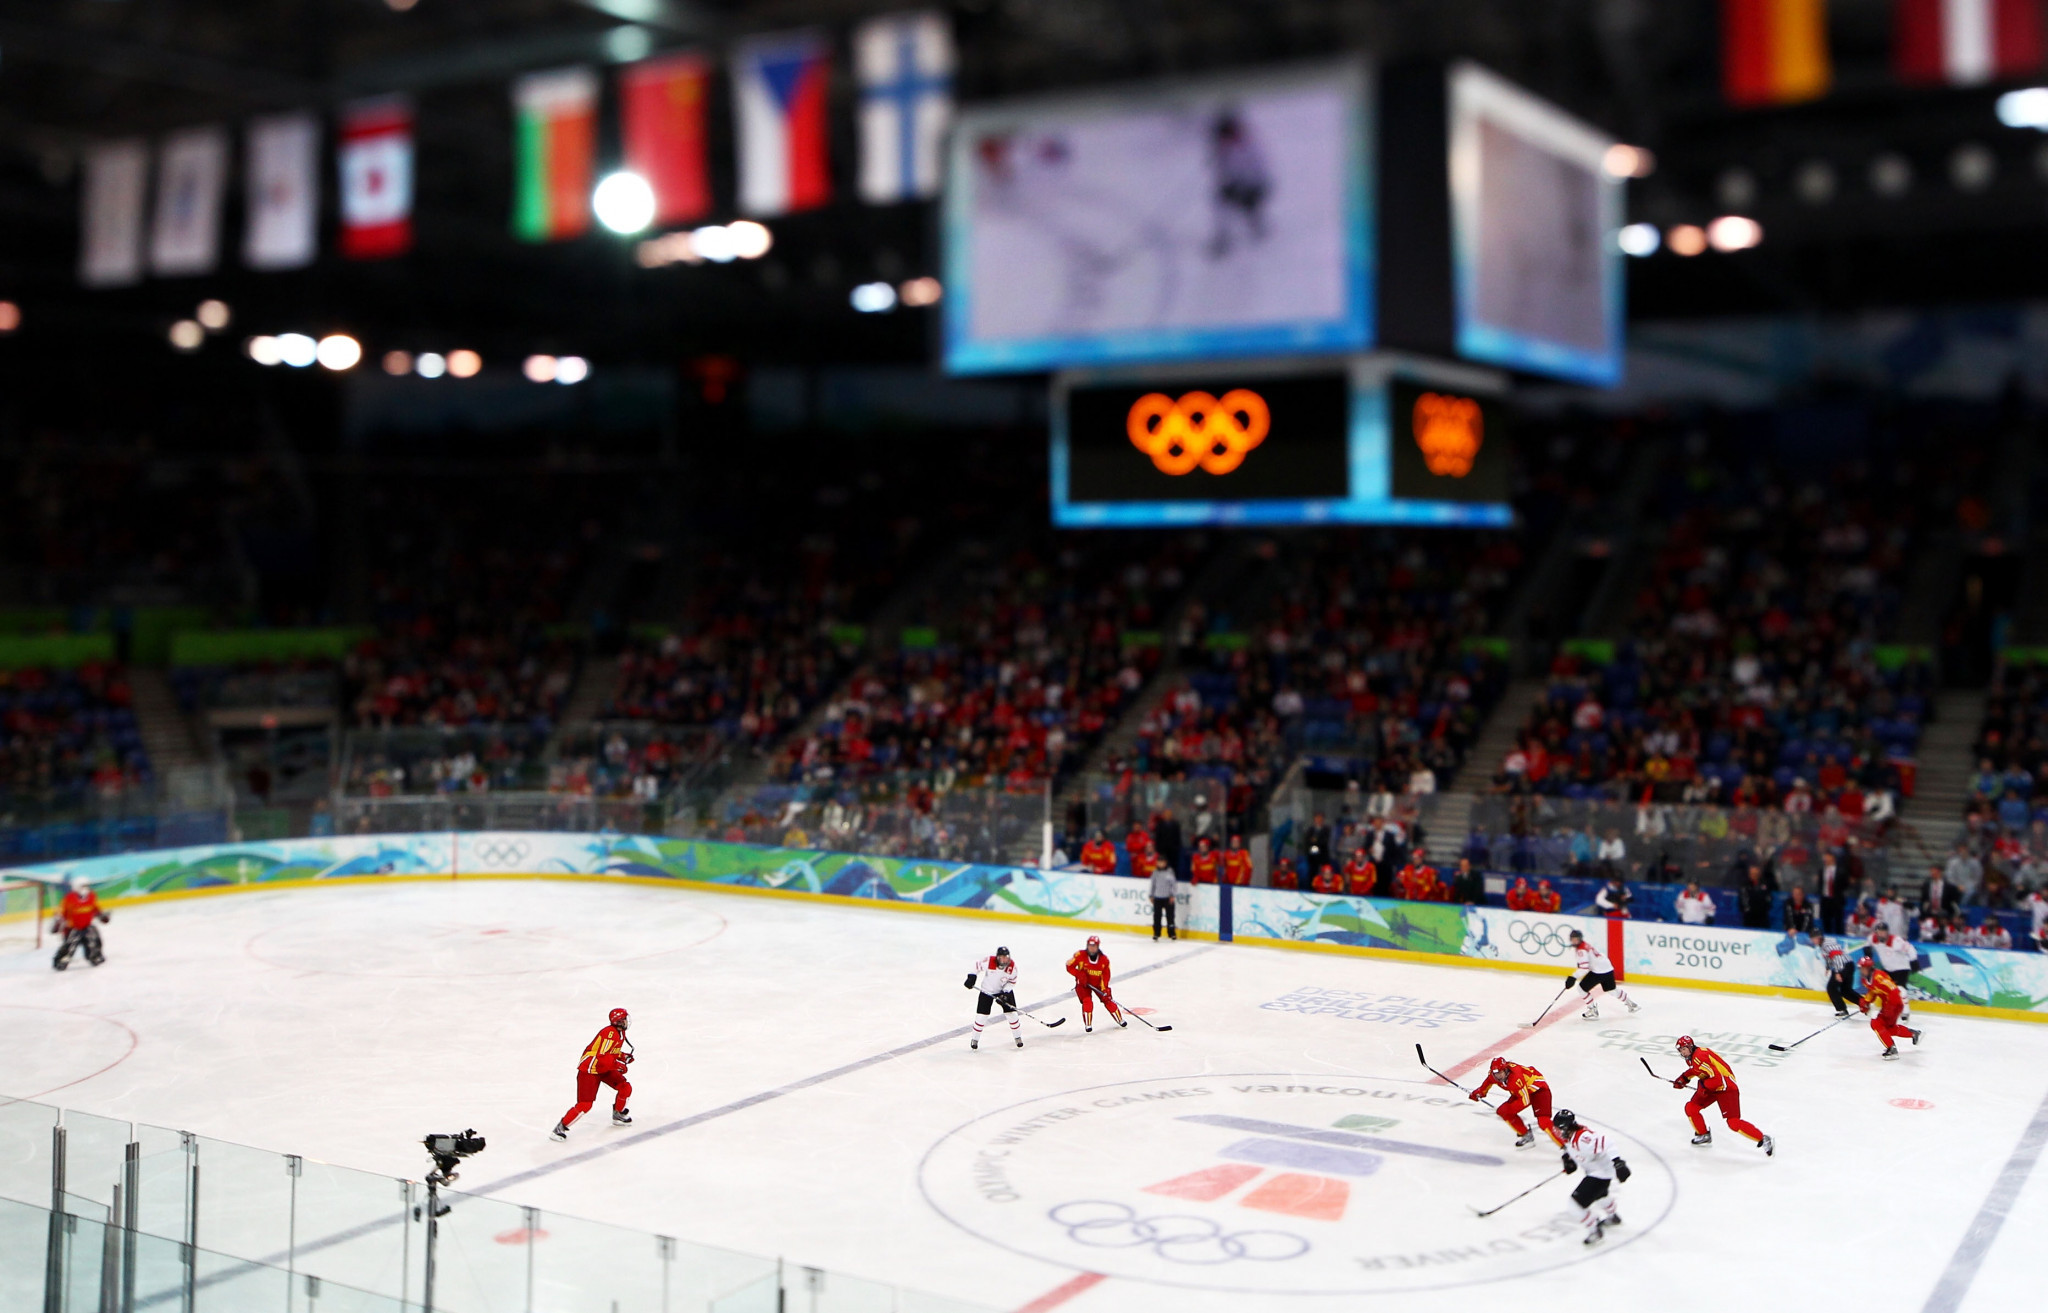 The Doug Mitchell Thunderbird Sports Centre was an ice hockey venue during the Vancouver 2010 Winter Olympics and Paralympics ©Getty Images